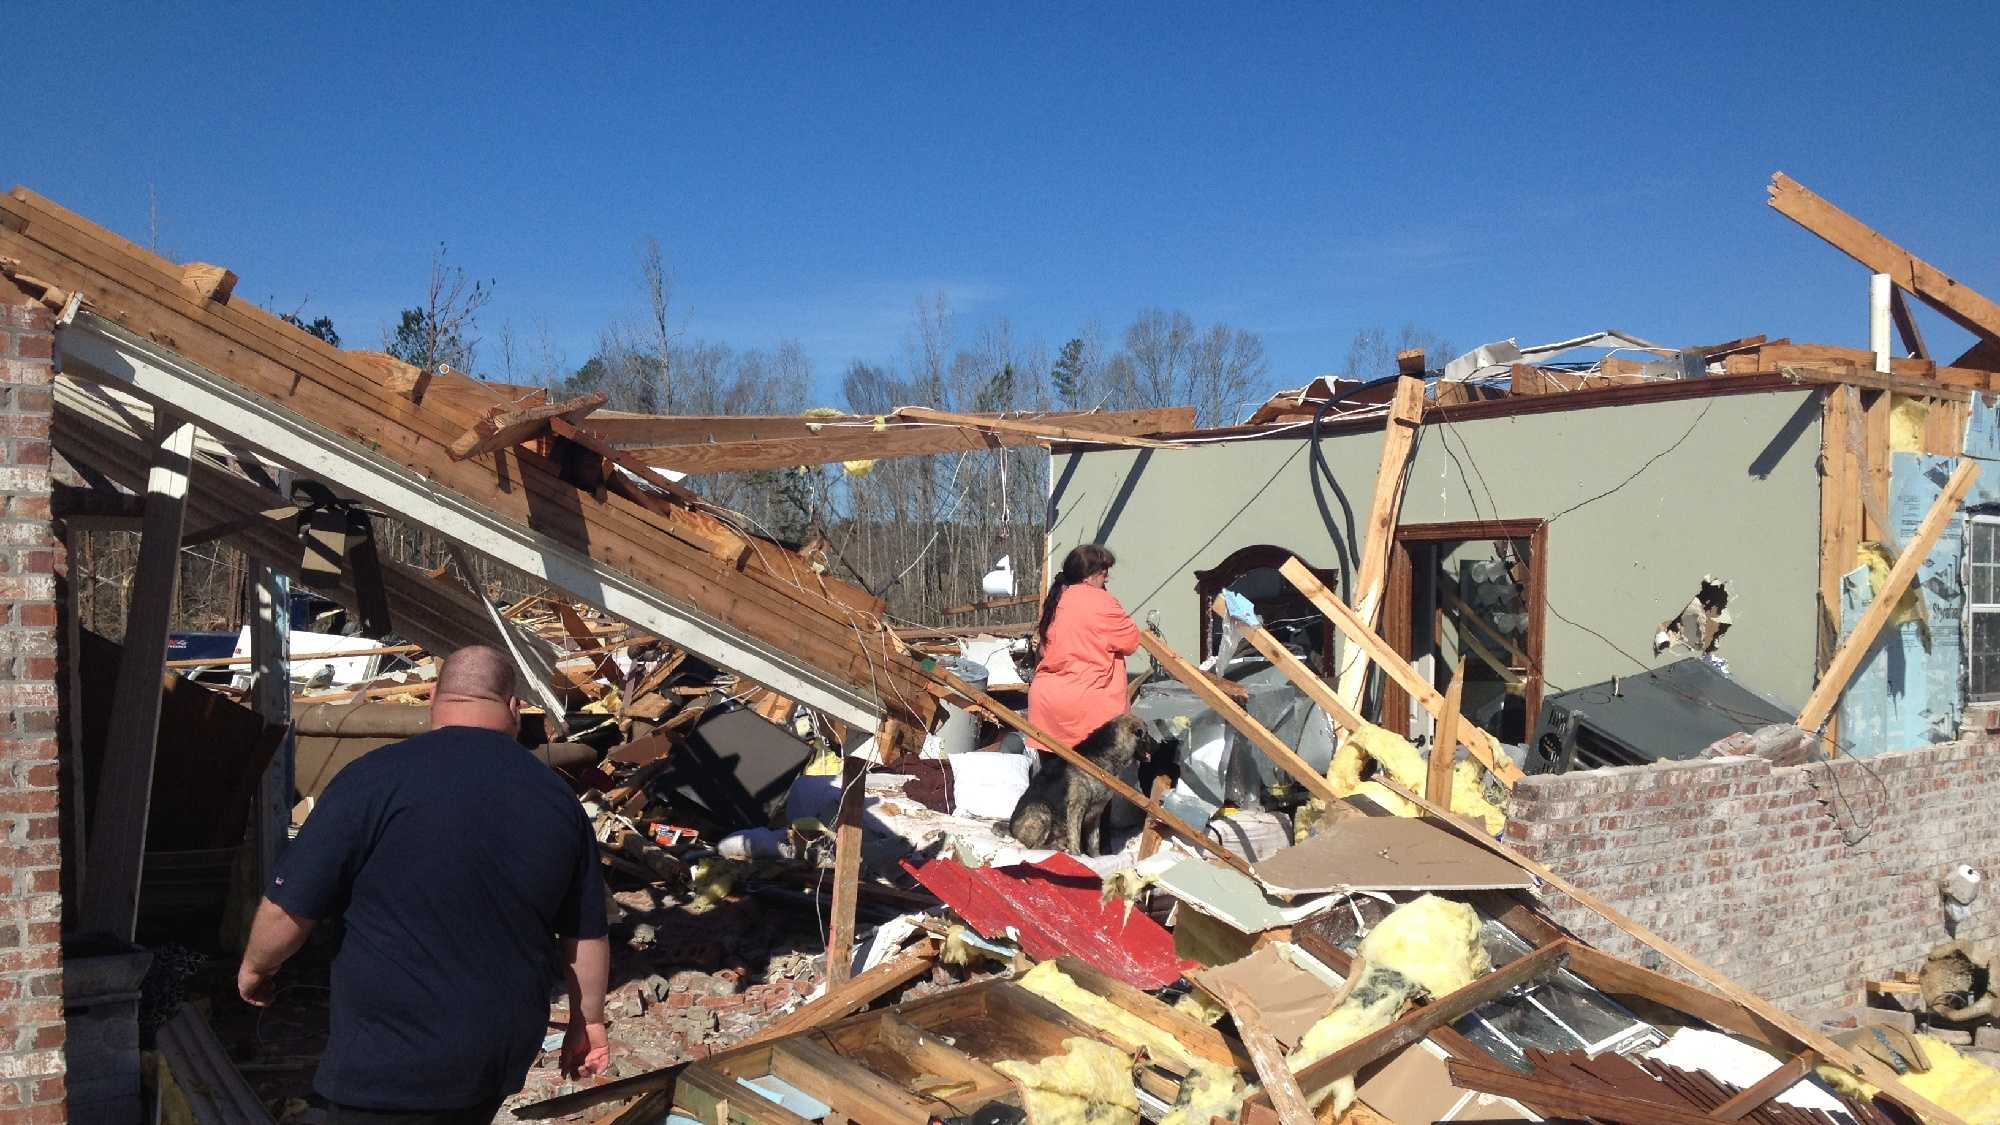 The town fire chief's home was destroyed by the tornado.